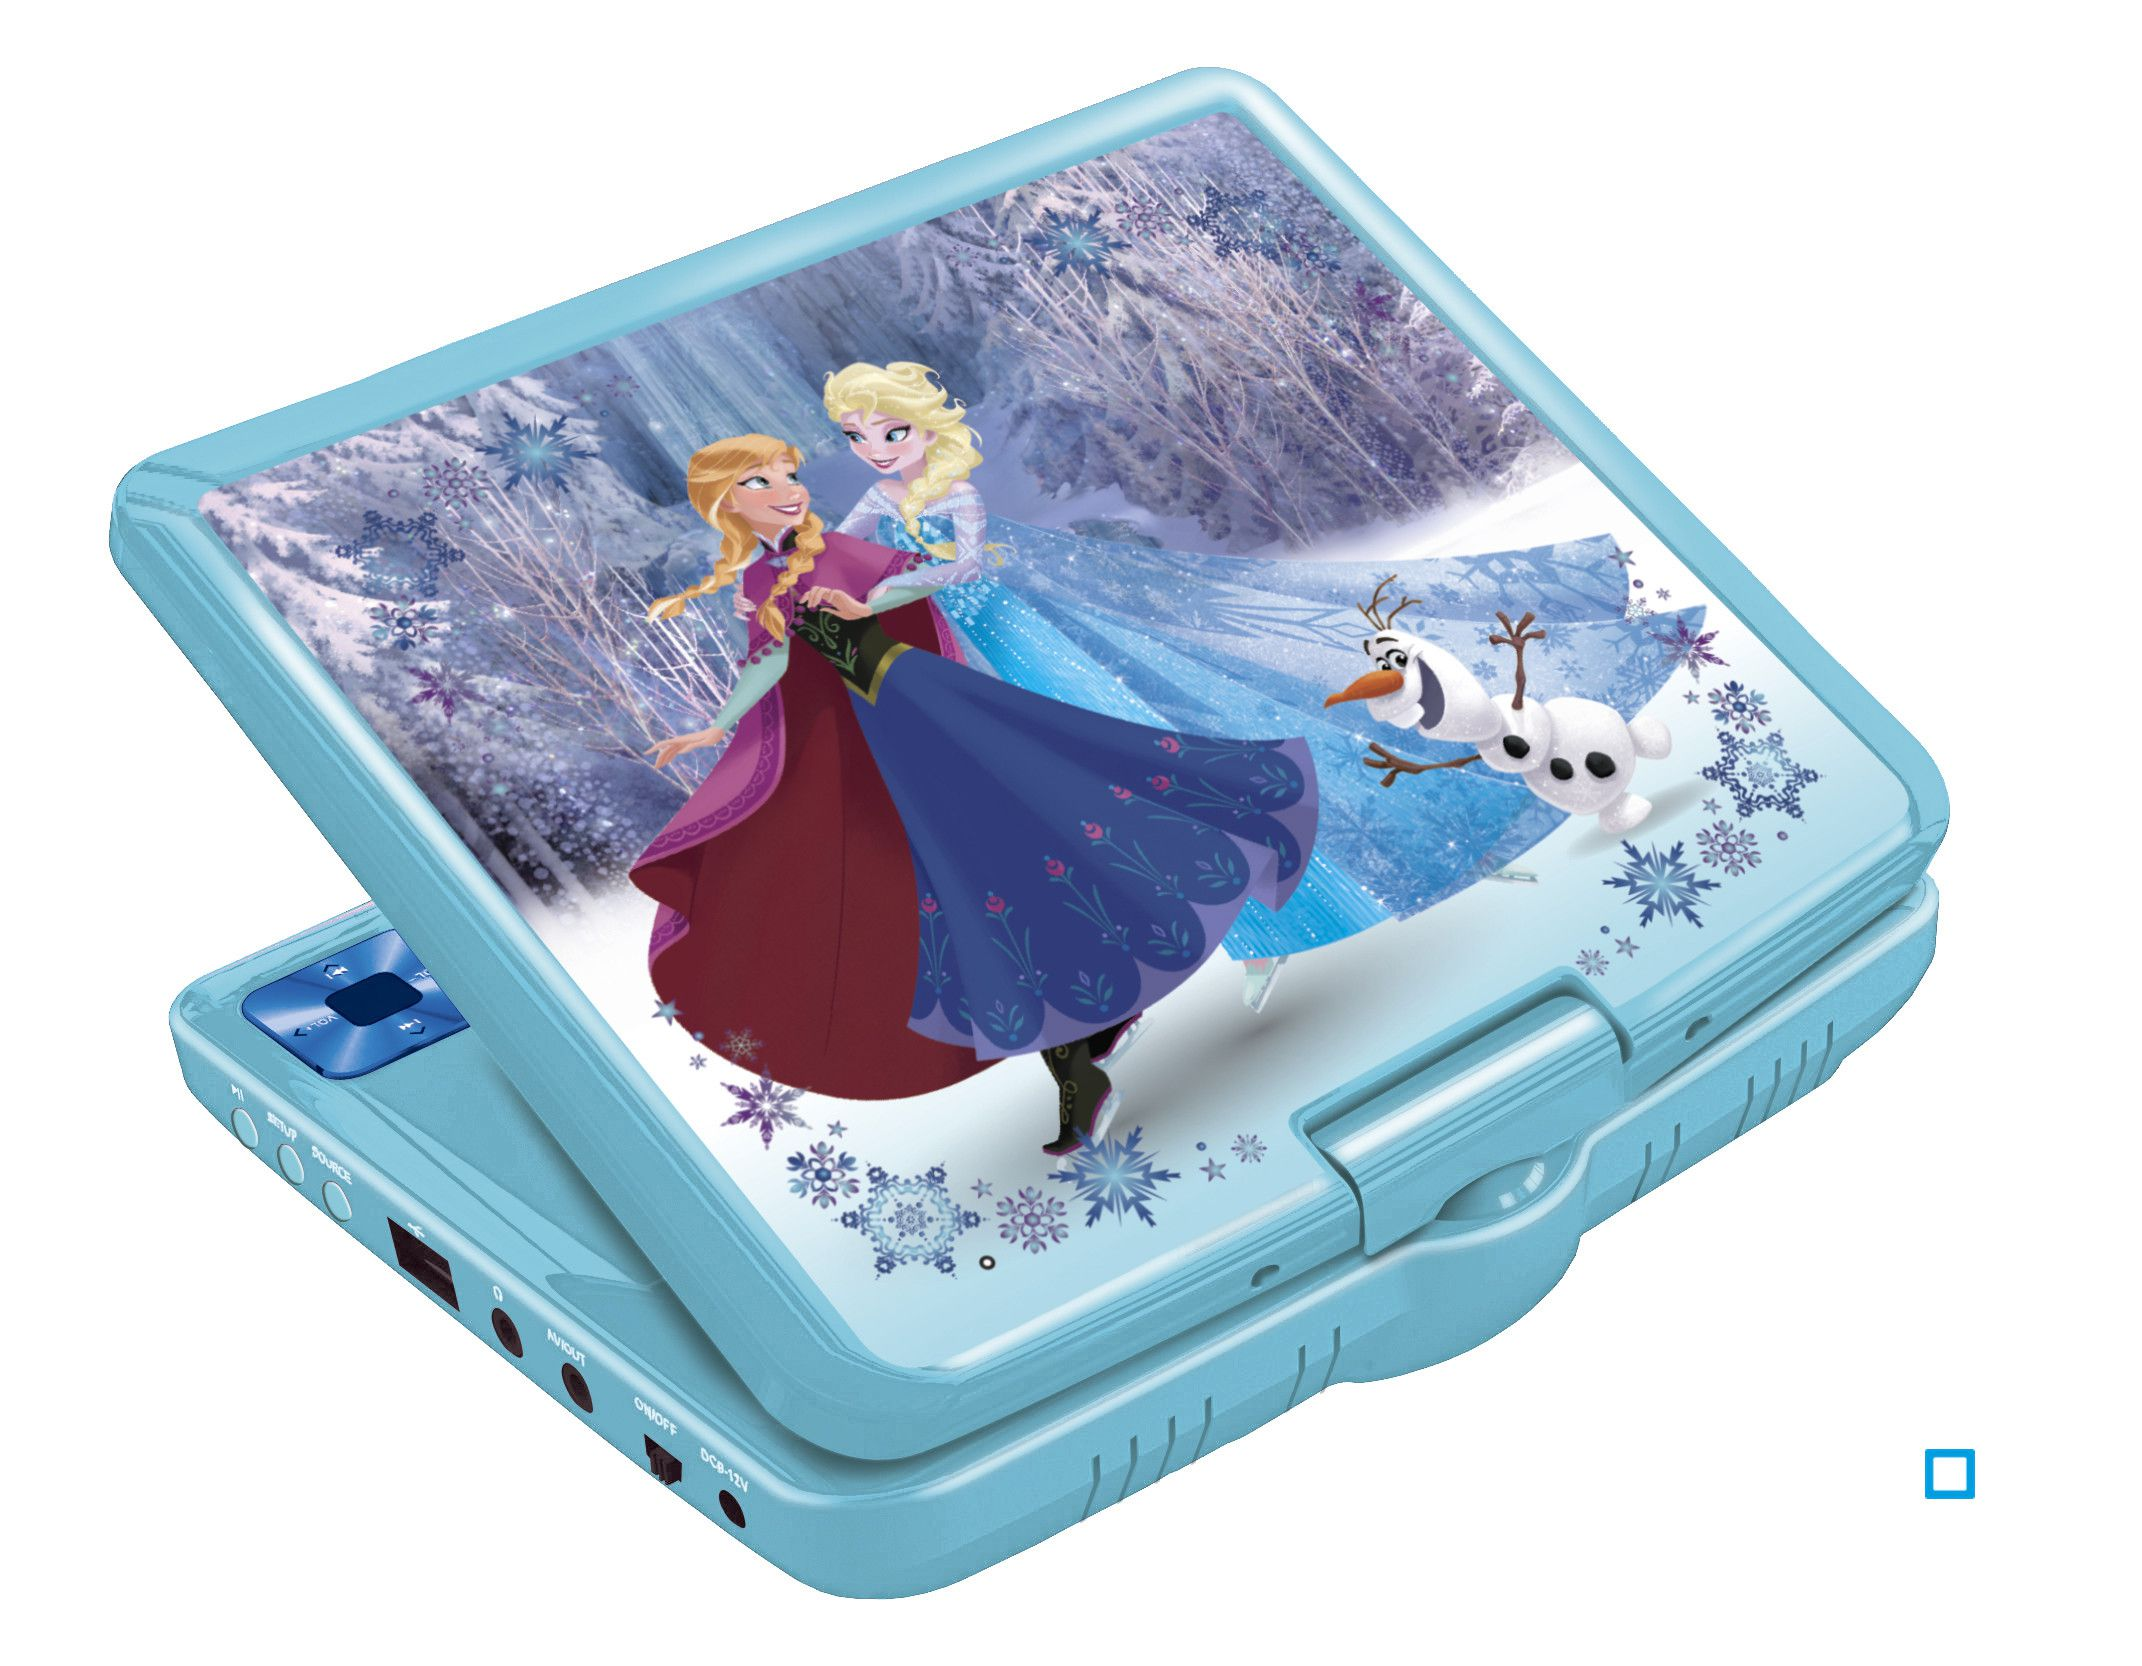 la reine des neiges lecteur dvd portable enfant lexibook achat vente lecteur dvd enfant. Black Bedroom Furniture Sets. Home Design Ideas